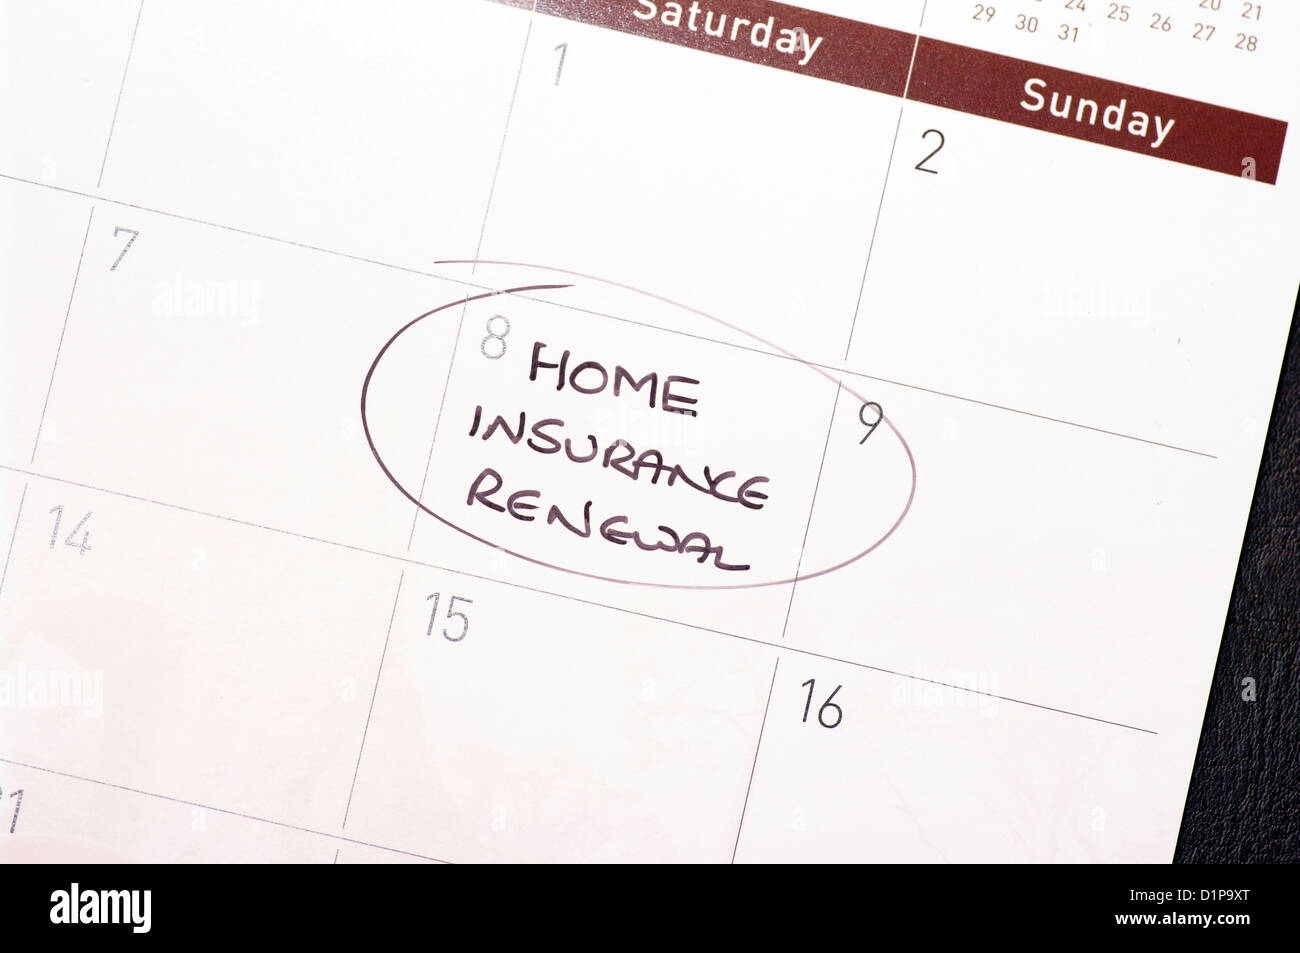 Home Insurance Renewal Reminder Circled On A Calendar - Stock Image